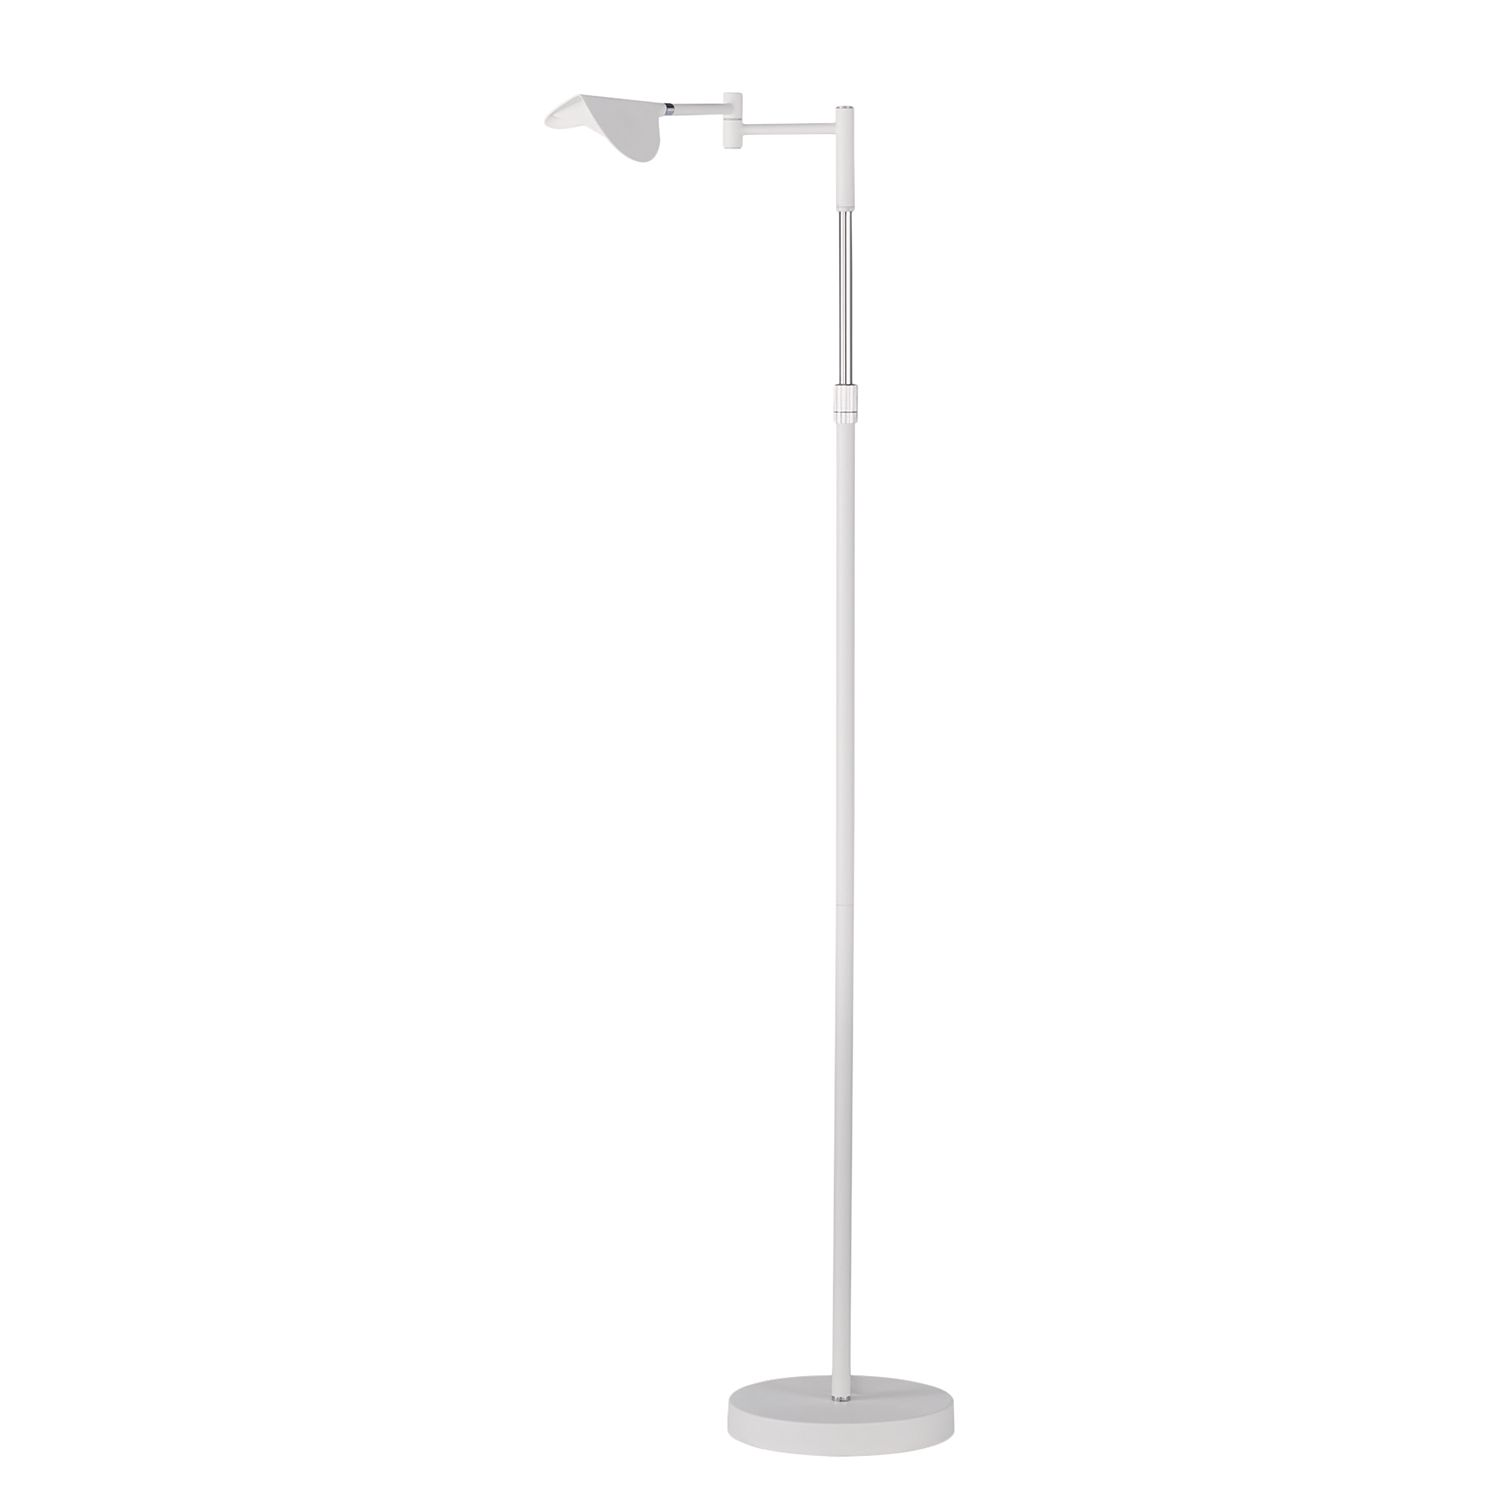 home24 LED-Stehleuchte Tento